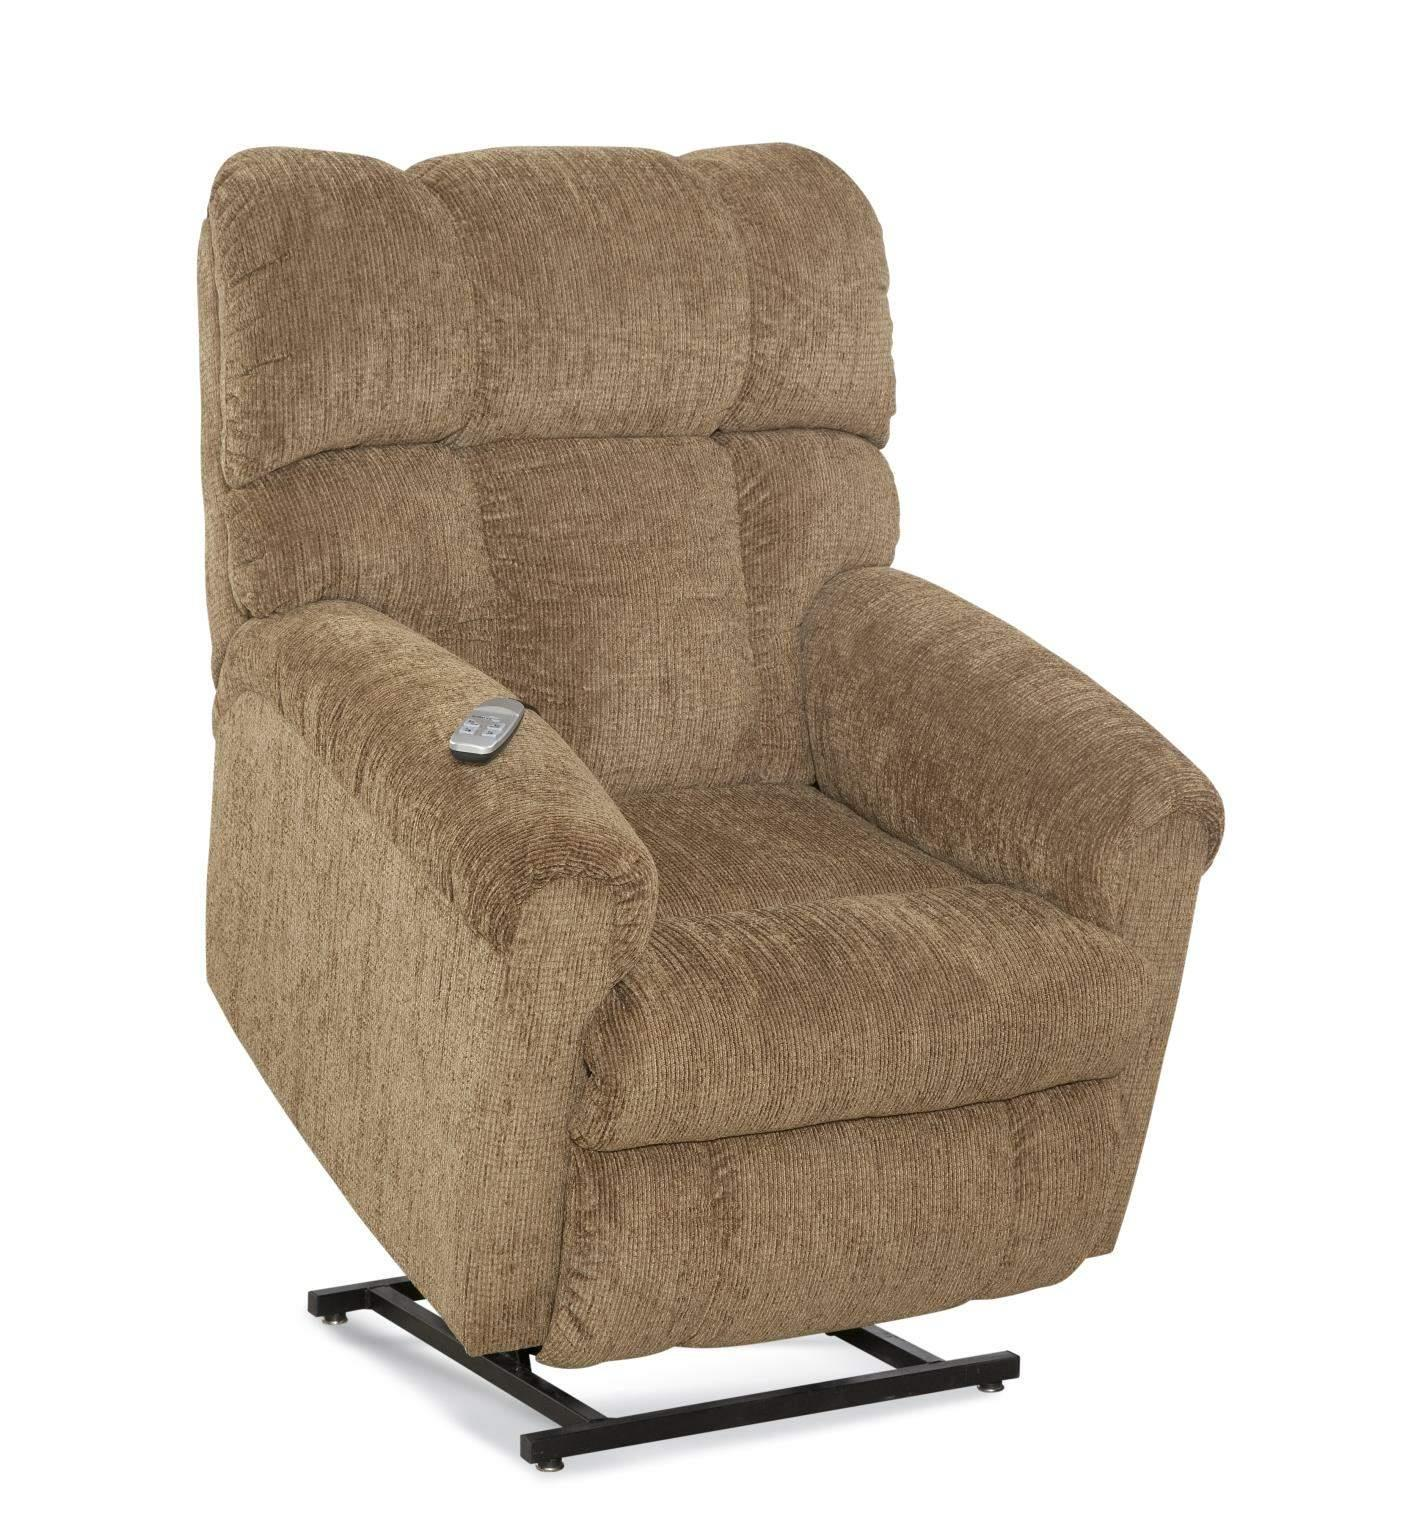 HomeStretch Lift Chairs Norton Toast Lift Chair Great American